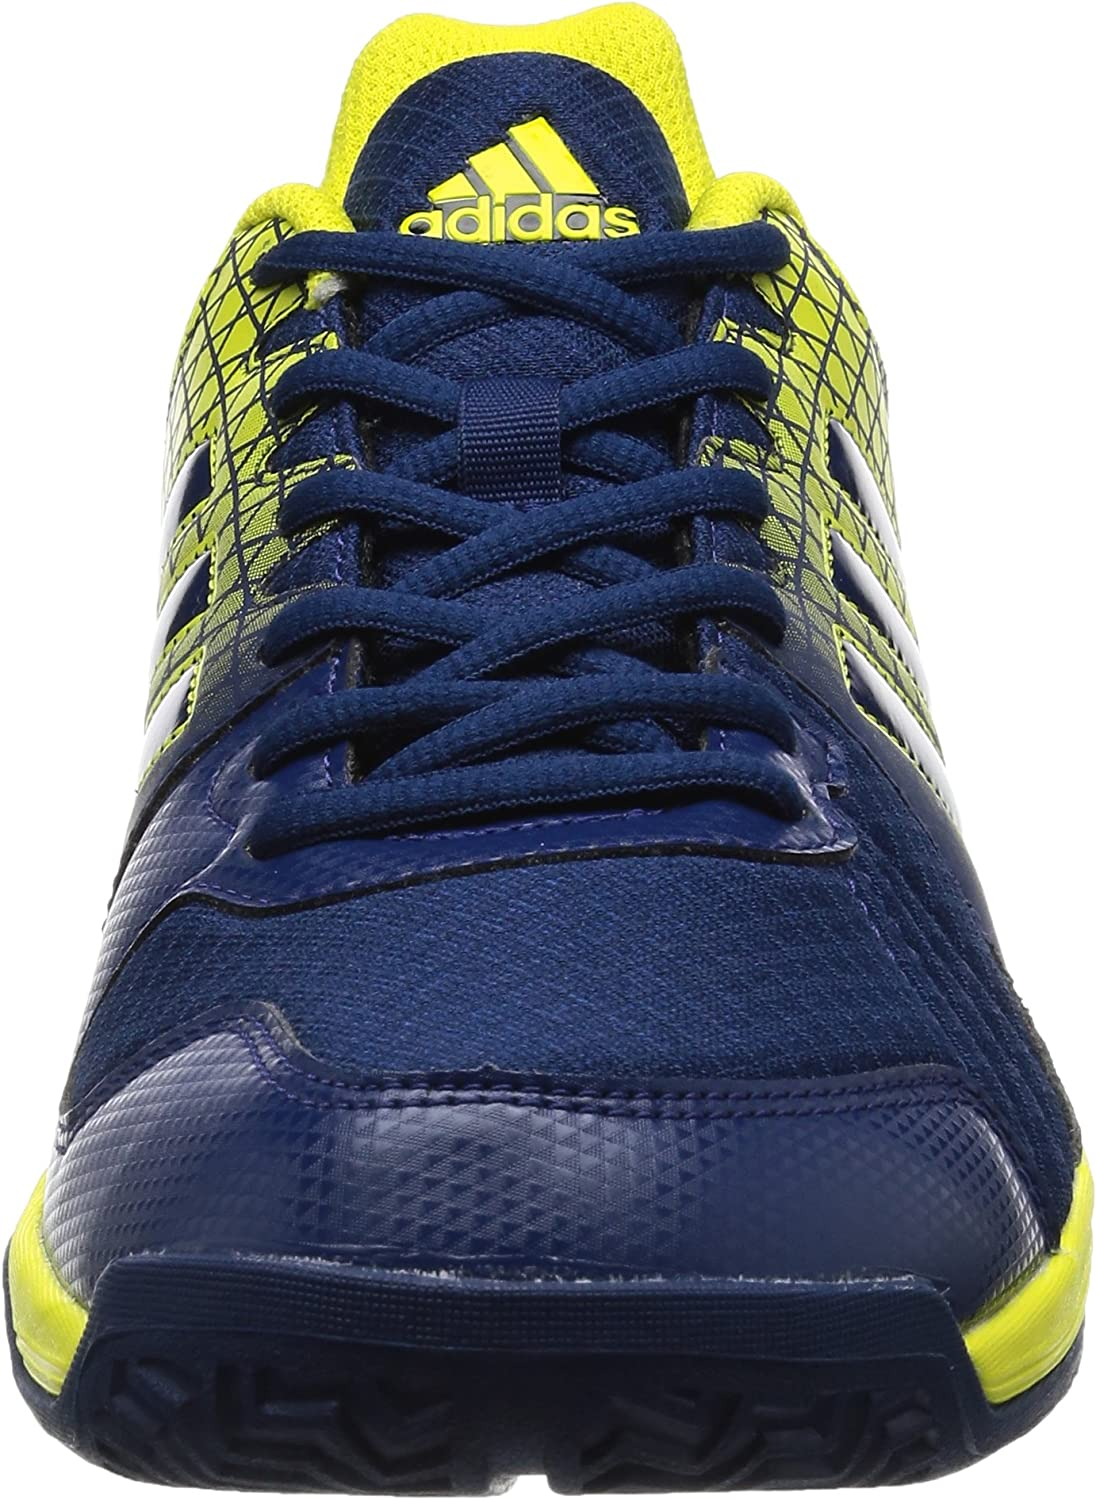 Adidas performance ligra 5 chaussures de volley mystery